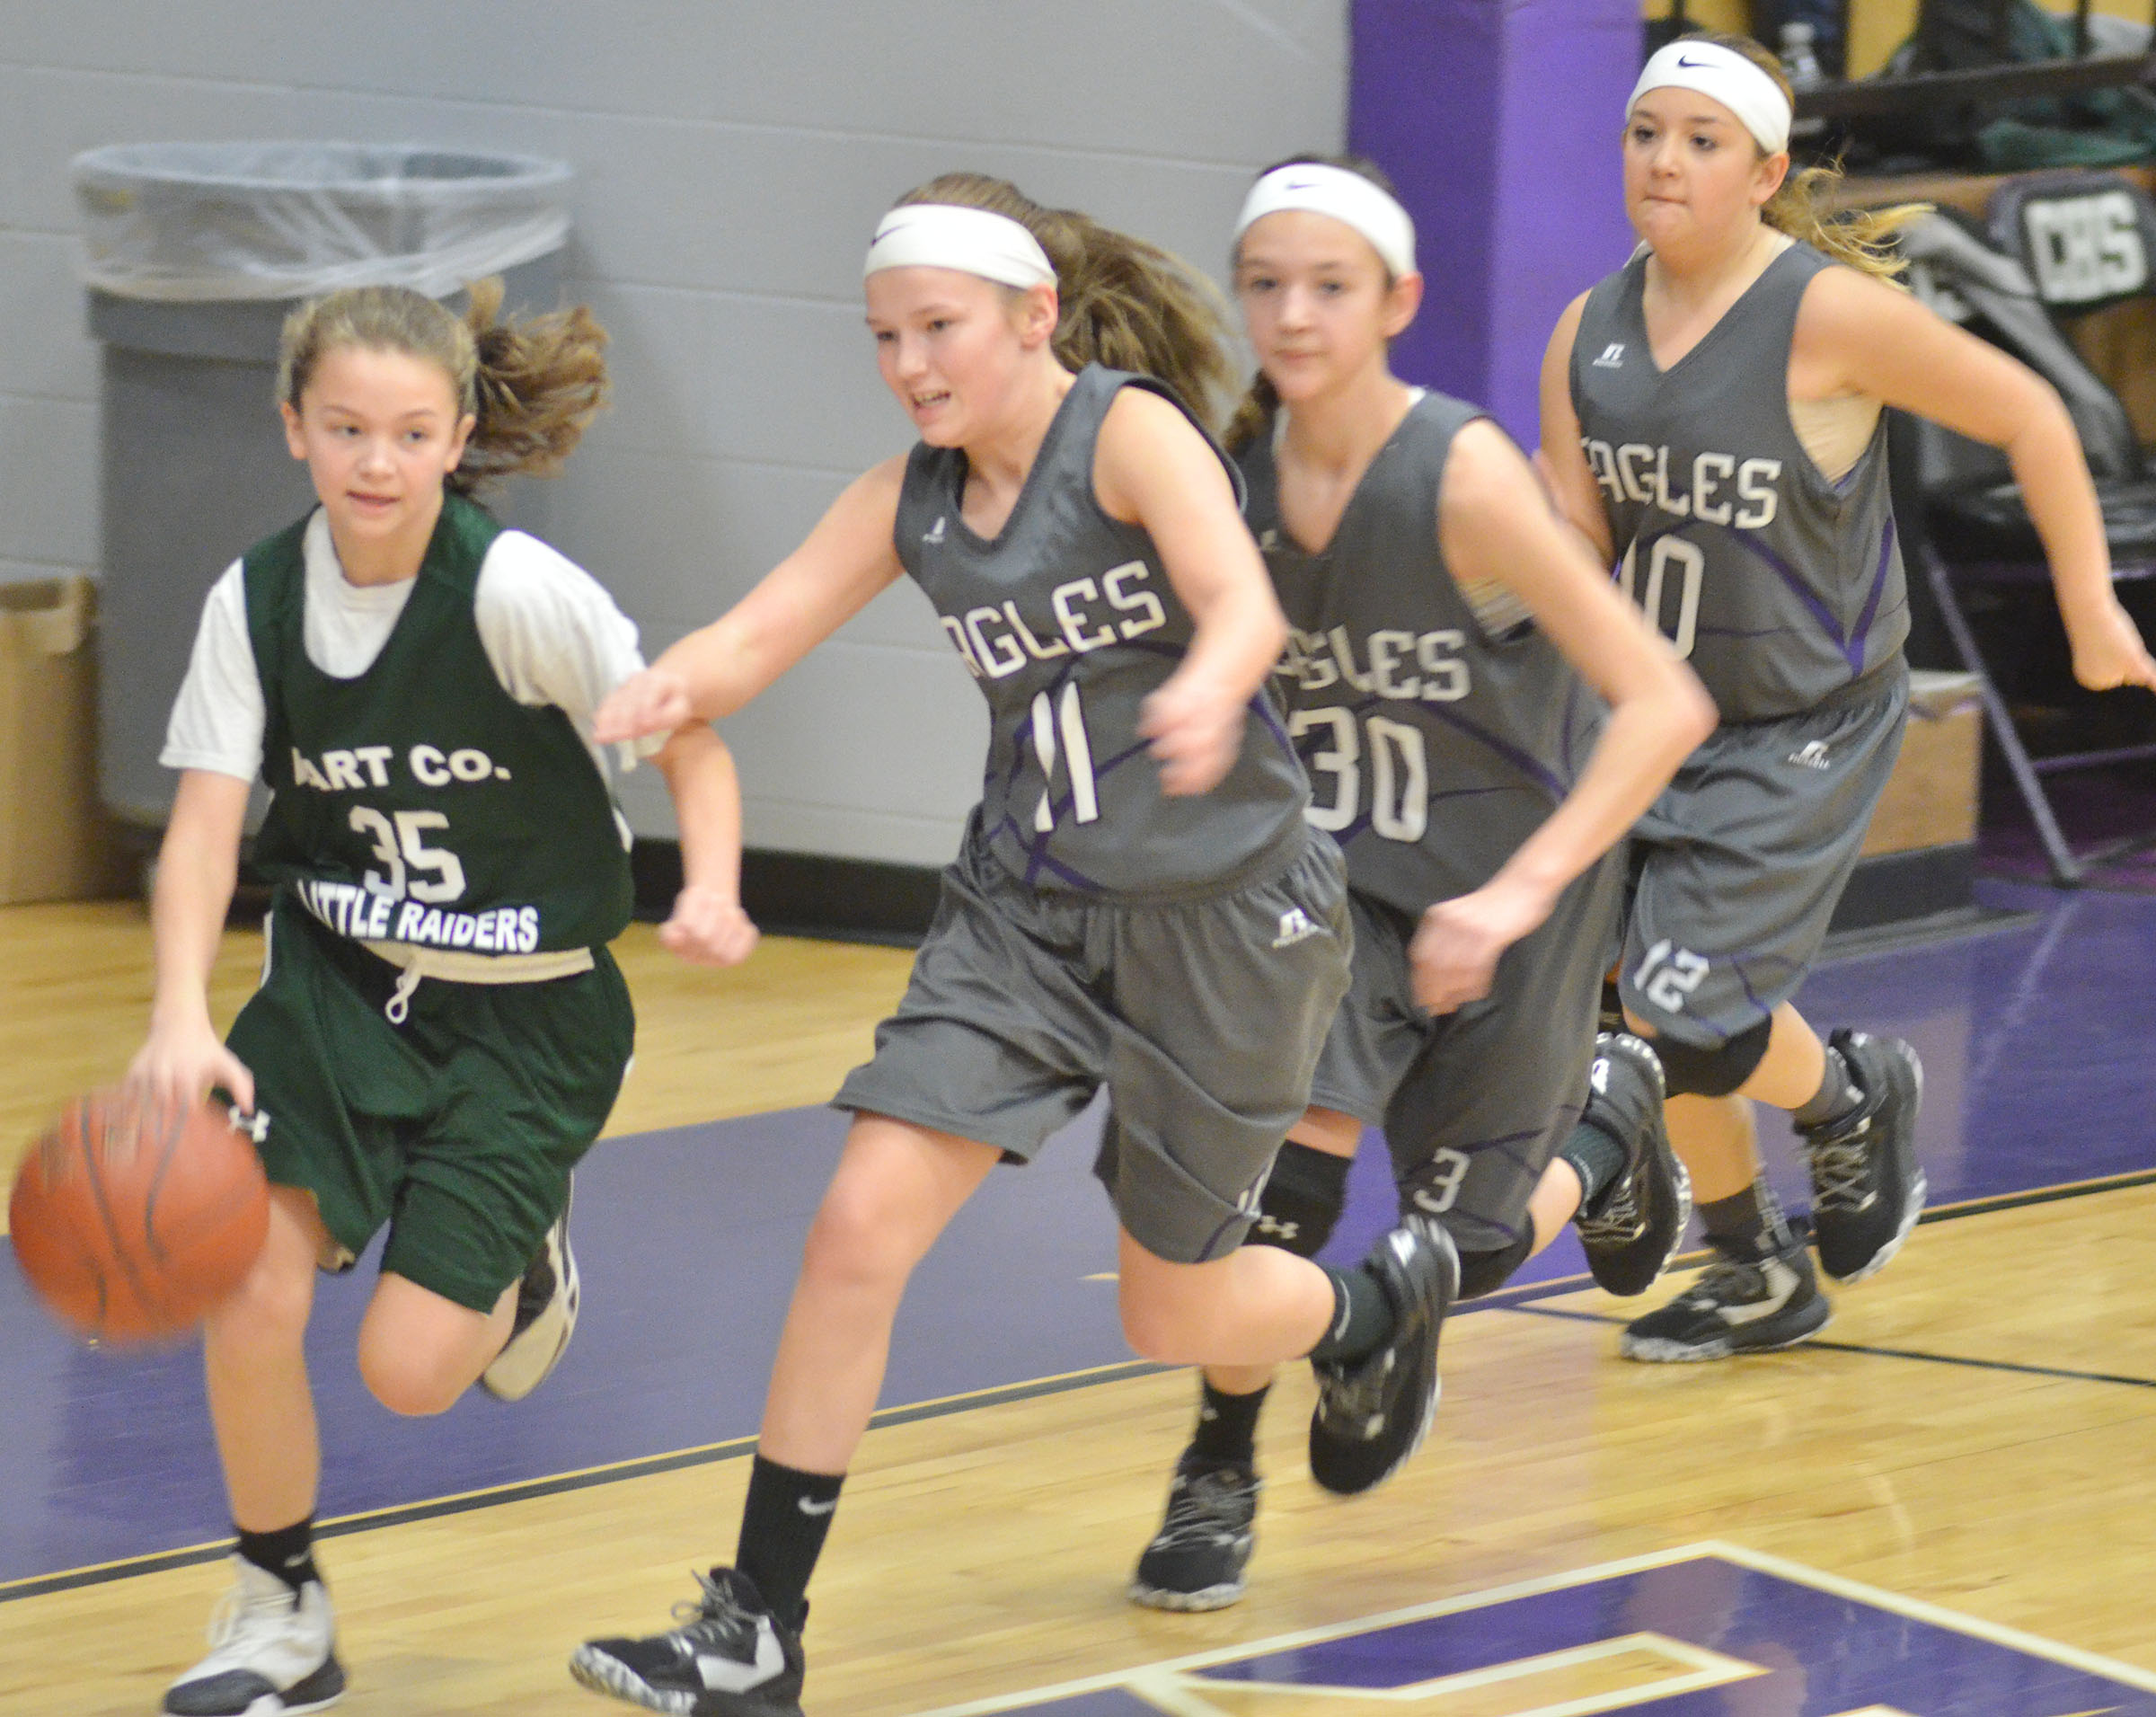 CMS sixth-graders, from left, Breanna Humphress, Bri Hayes and Briana Davis run to the basket.